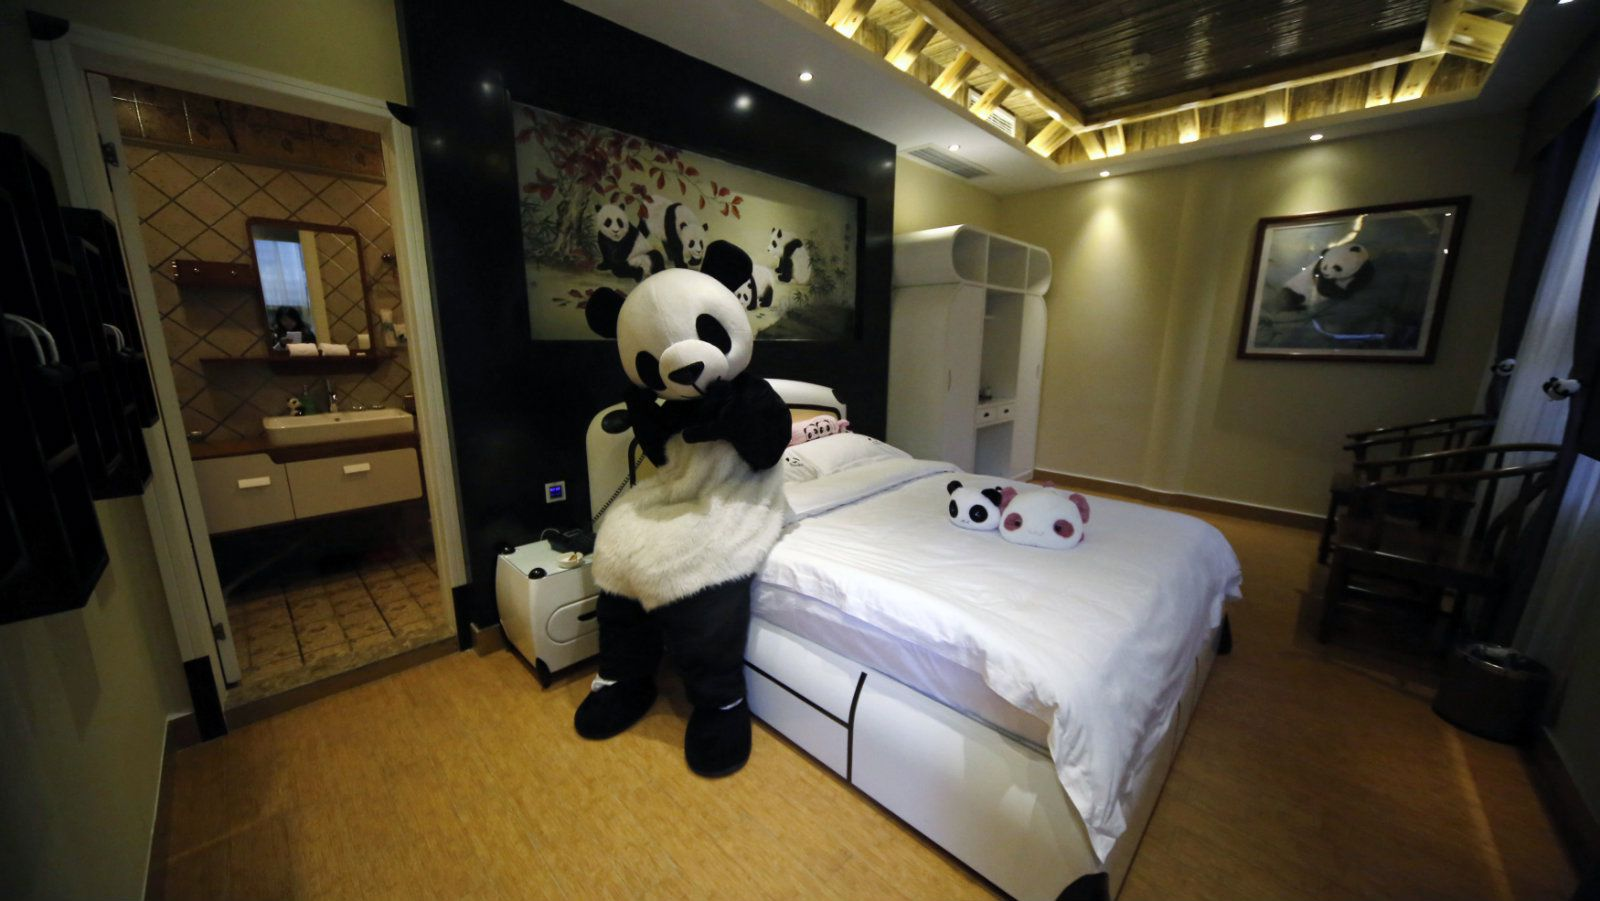 An employee dressed in a panda costume poses for a photo during the soft opening of a panda-themed hotel at the foot of Emei Mountain, Southwest China's Sichuan province, February 25, 2013. According to local media, the hotel is the first panda-themed hotel in the world and will officially open in May with room rates from 300 to 500 yuan ($48 to $80) per night. Picture taken February 25, 2013. REUTERS/China Daily (CHINA - Tags: ANIMALS SOCIETY) CHINA OUT. NO COMMERCIAL OR EDITORIAL SALES IN CHINA